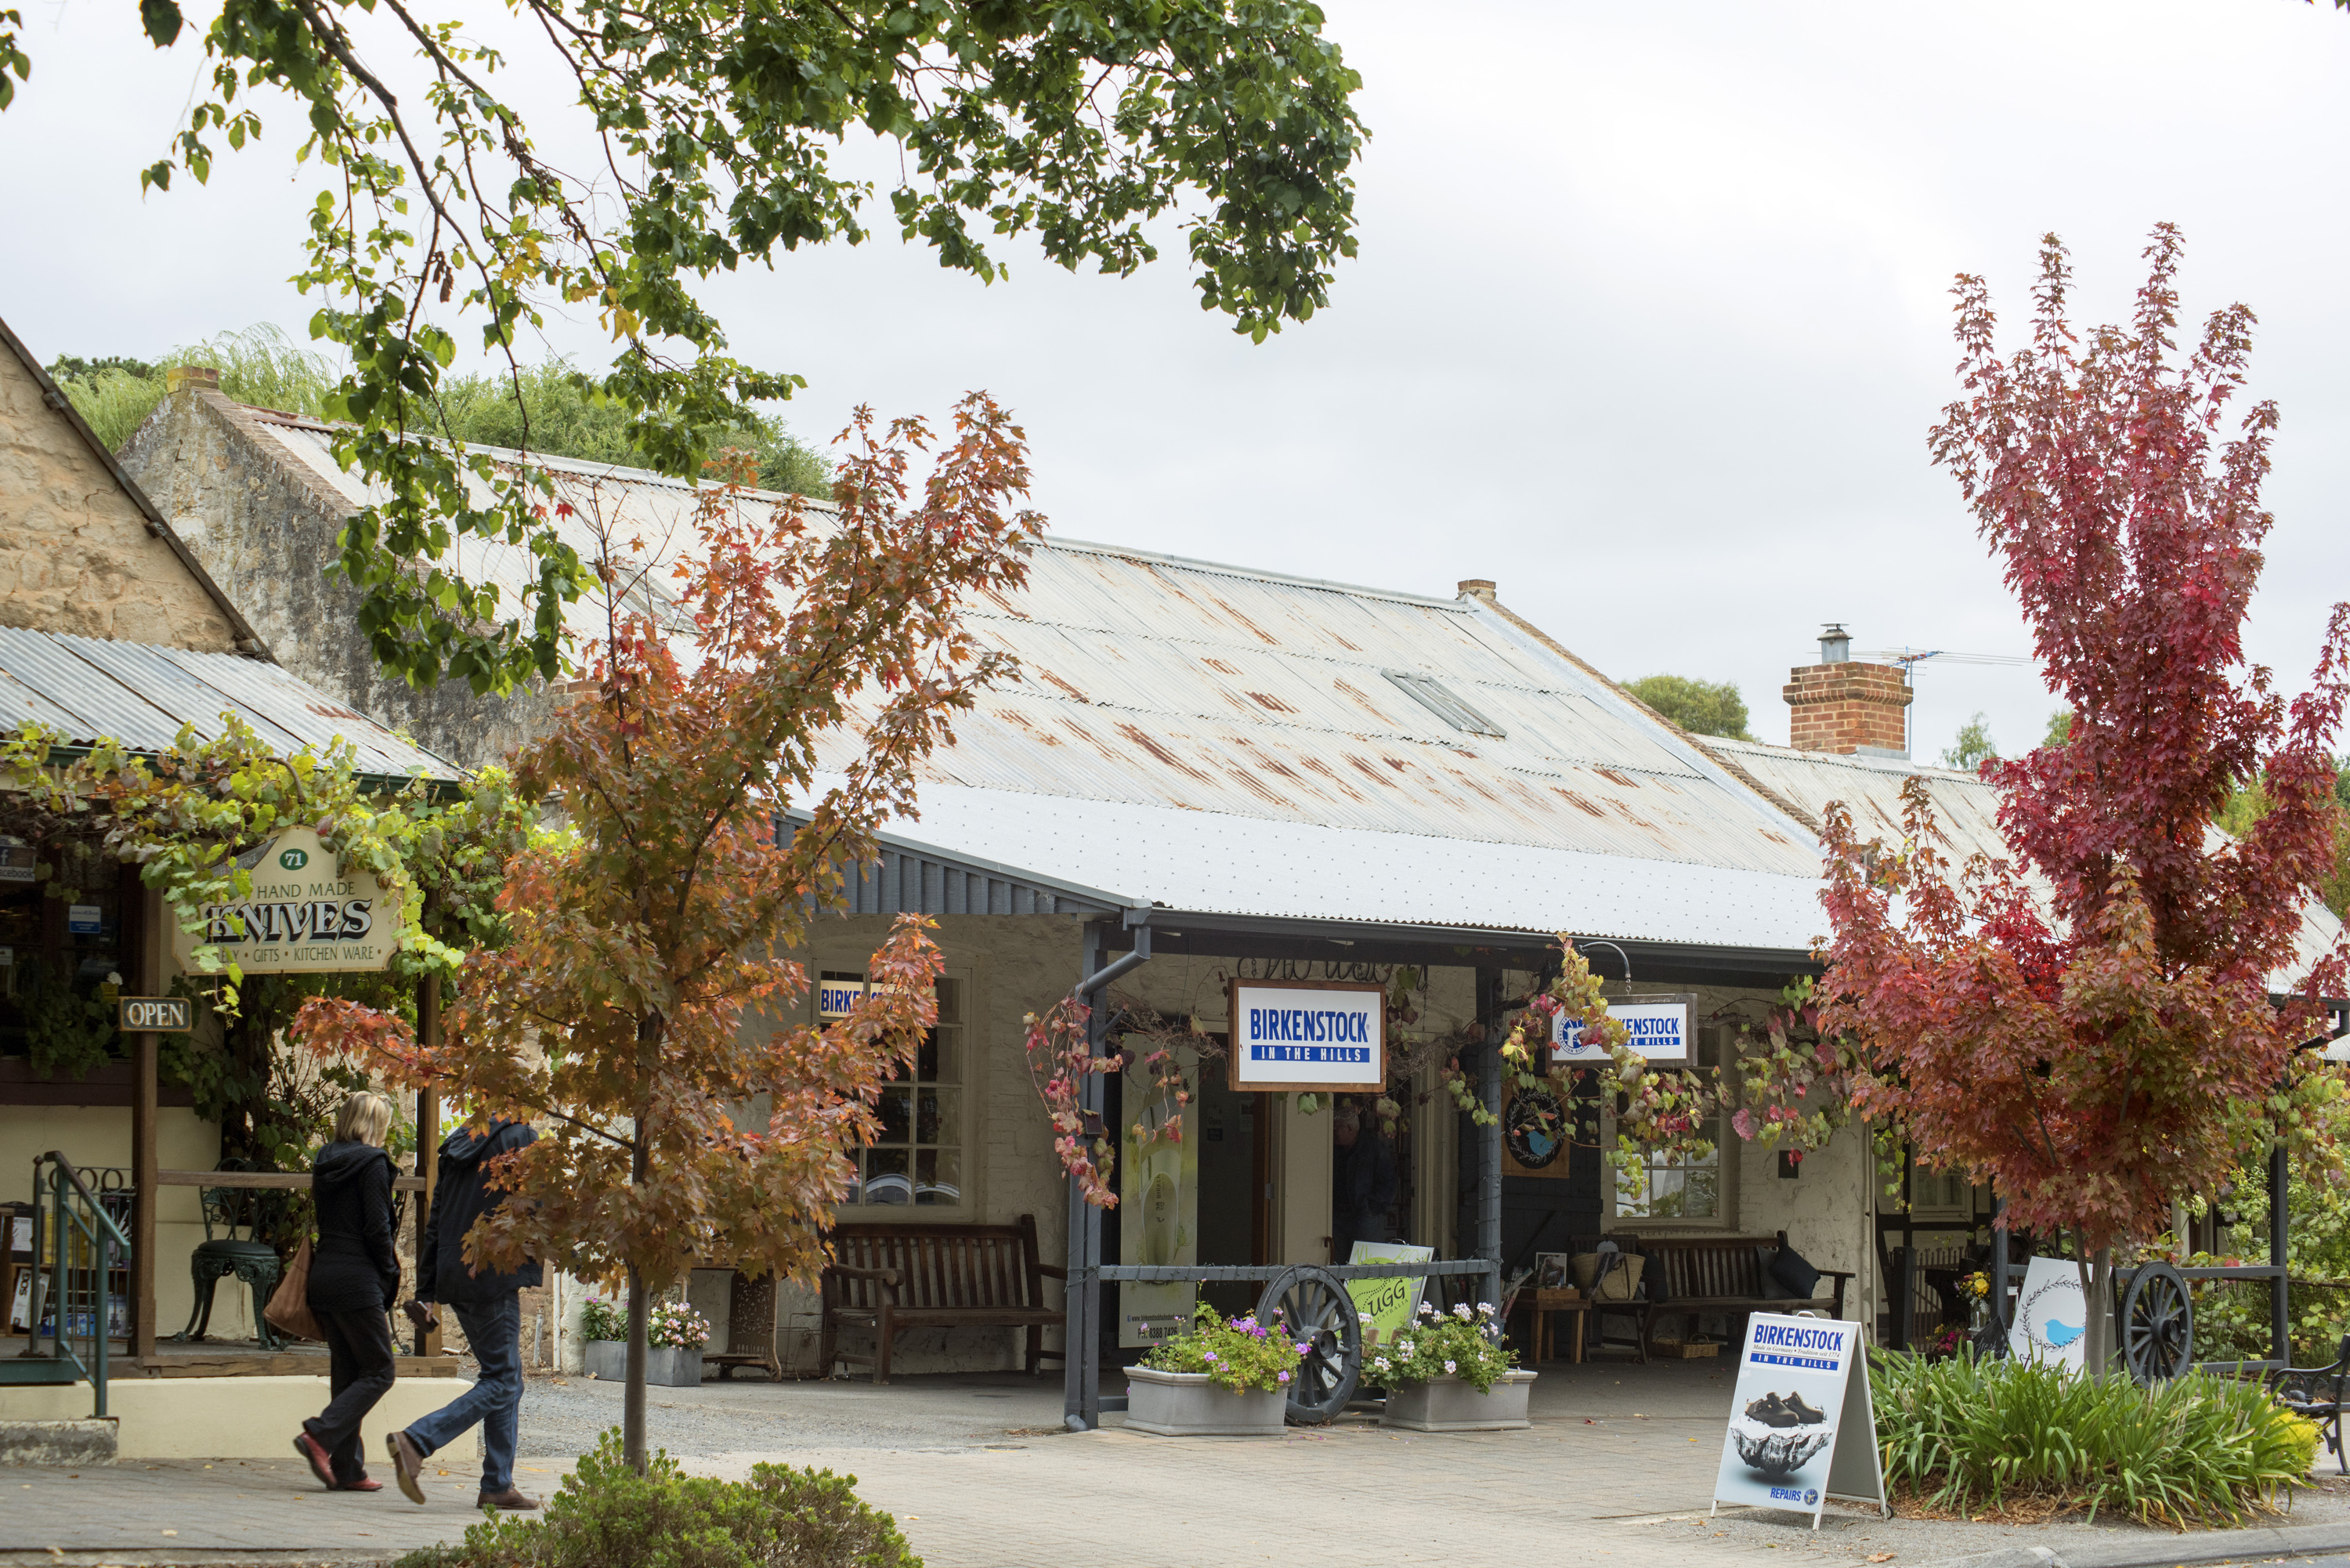 Quaint historic town of Hahndorf, Adelaide Hills, South Australia with its German colonial architecture and leafy green vegetation